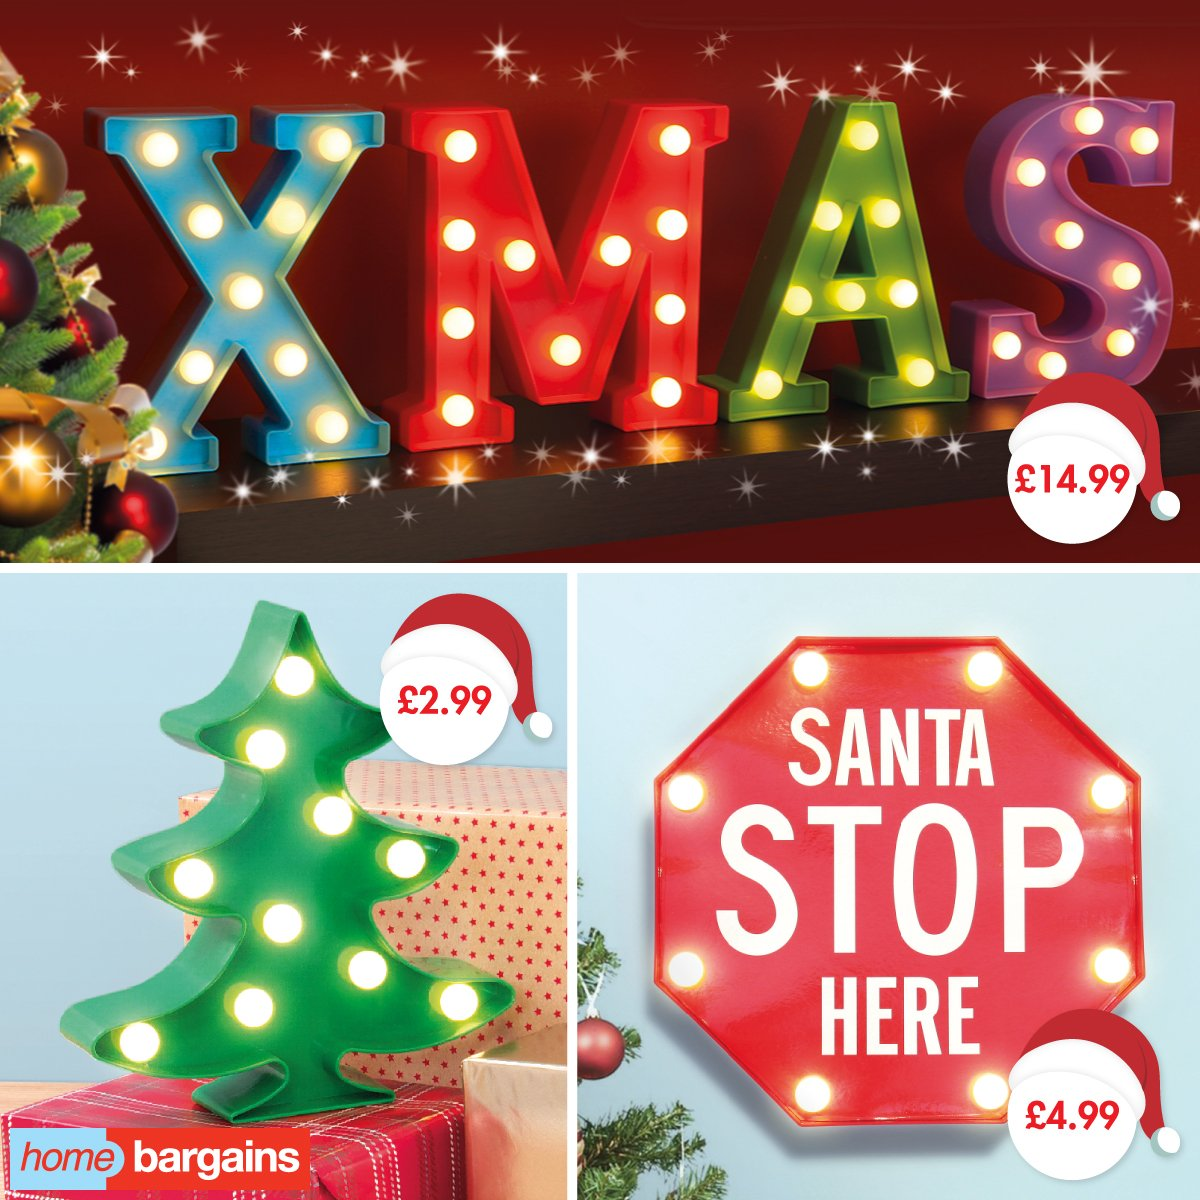 Don't miss Christmas deals on lights at Home Bargains